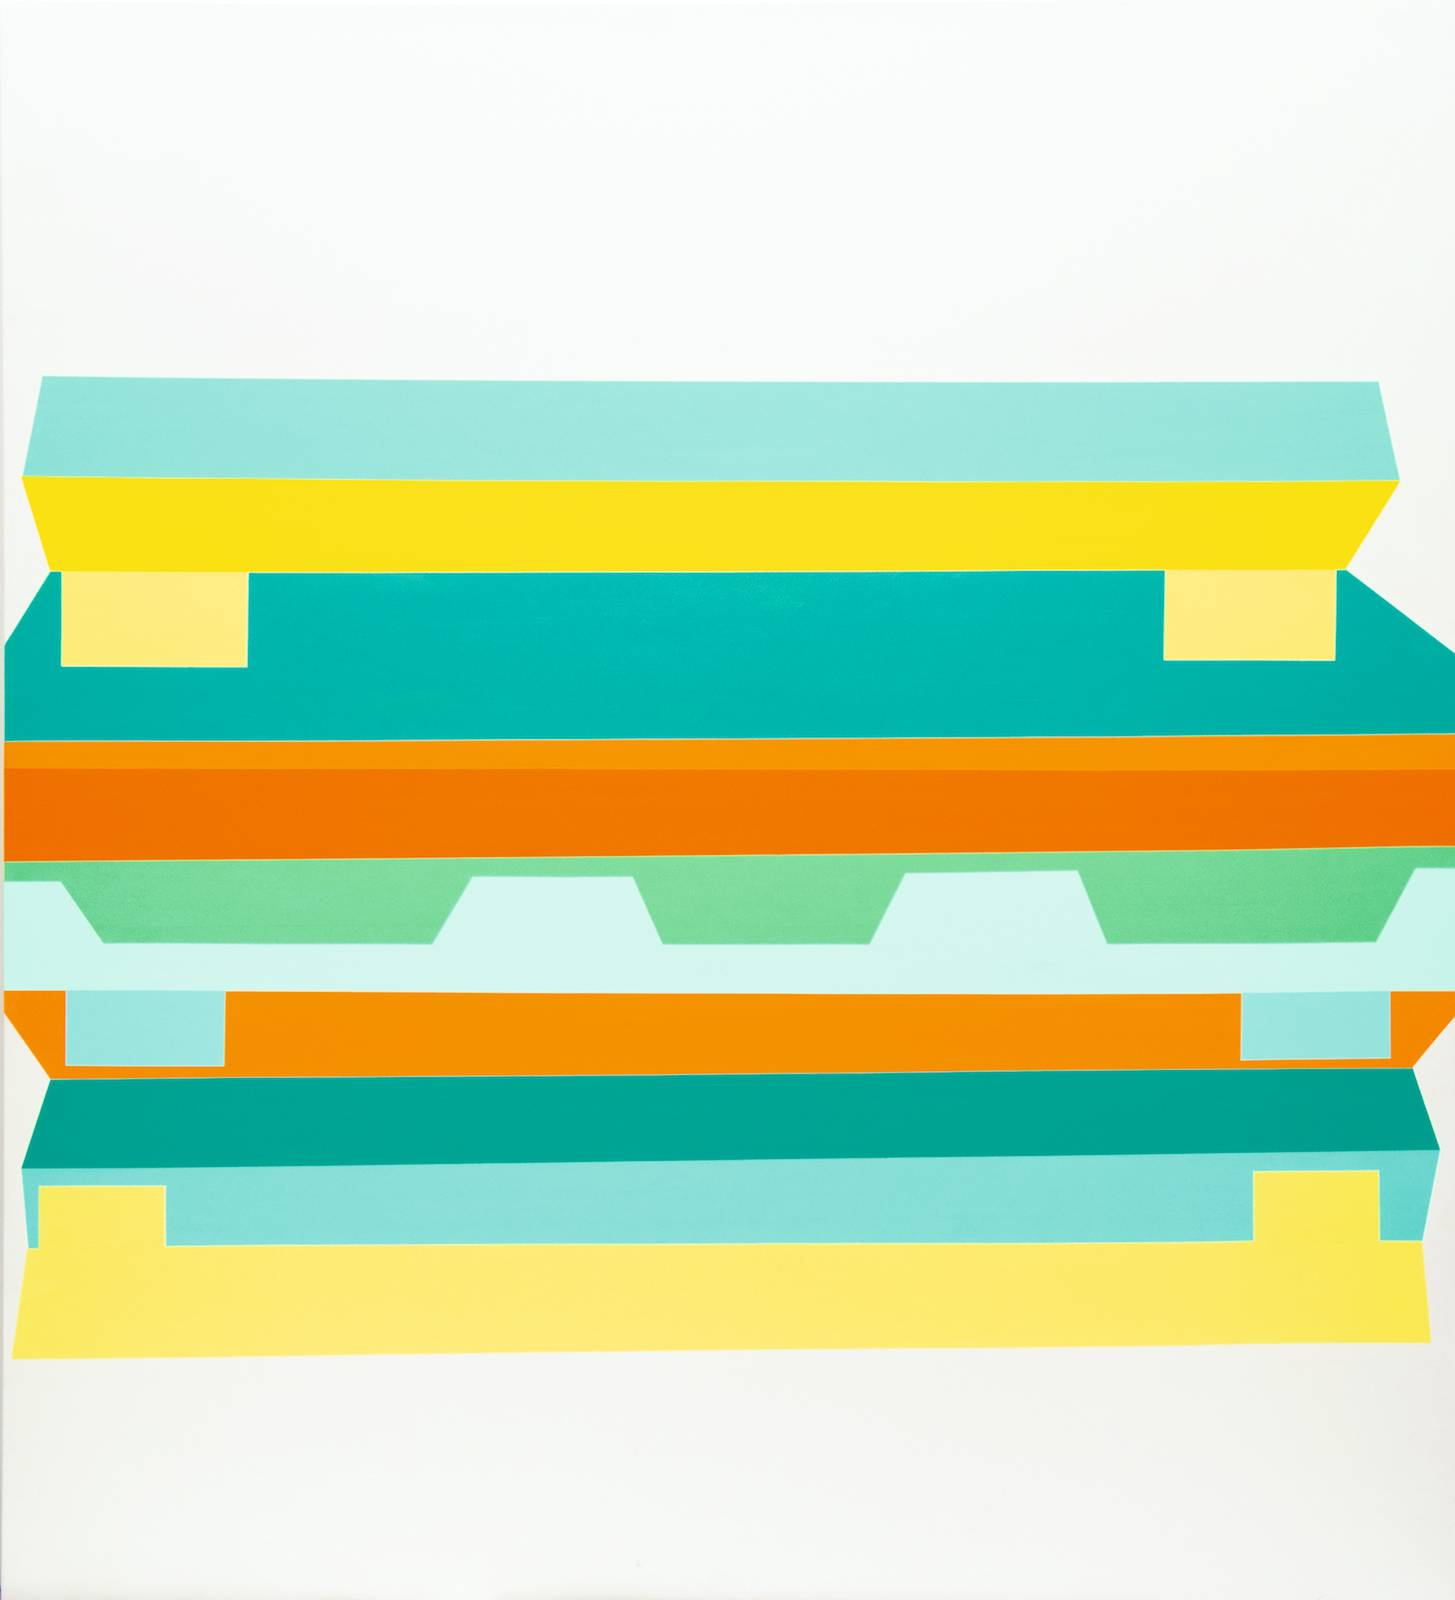 Panorama/The Second Generation, No.07, 2011/12, acrylic on canvas, 265 x 245 cm